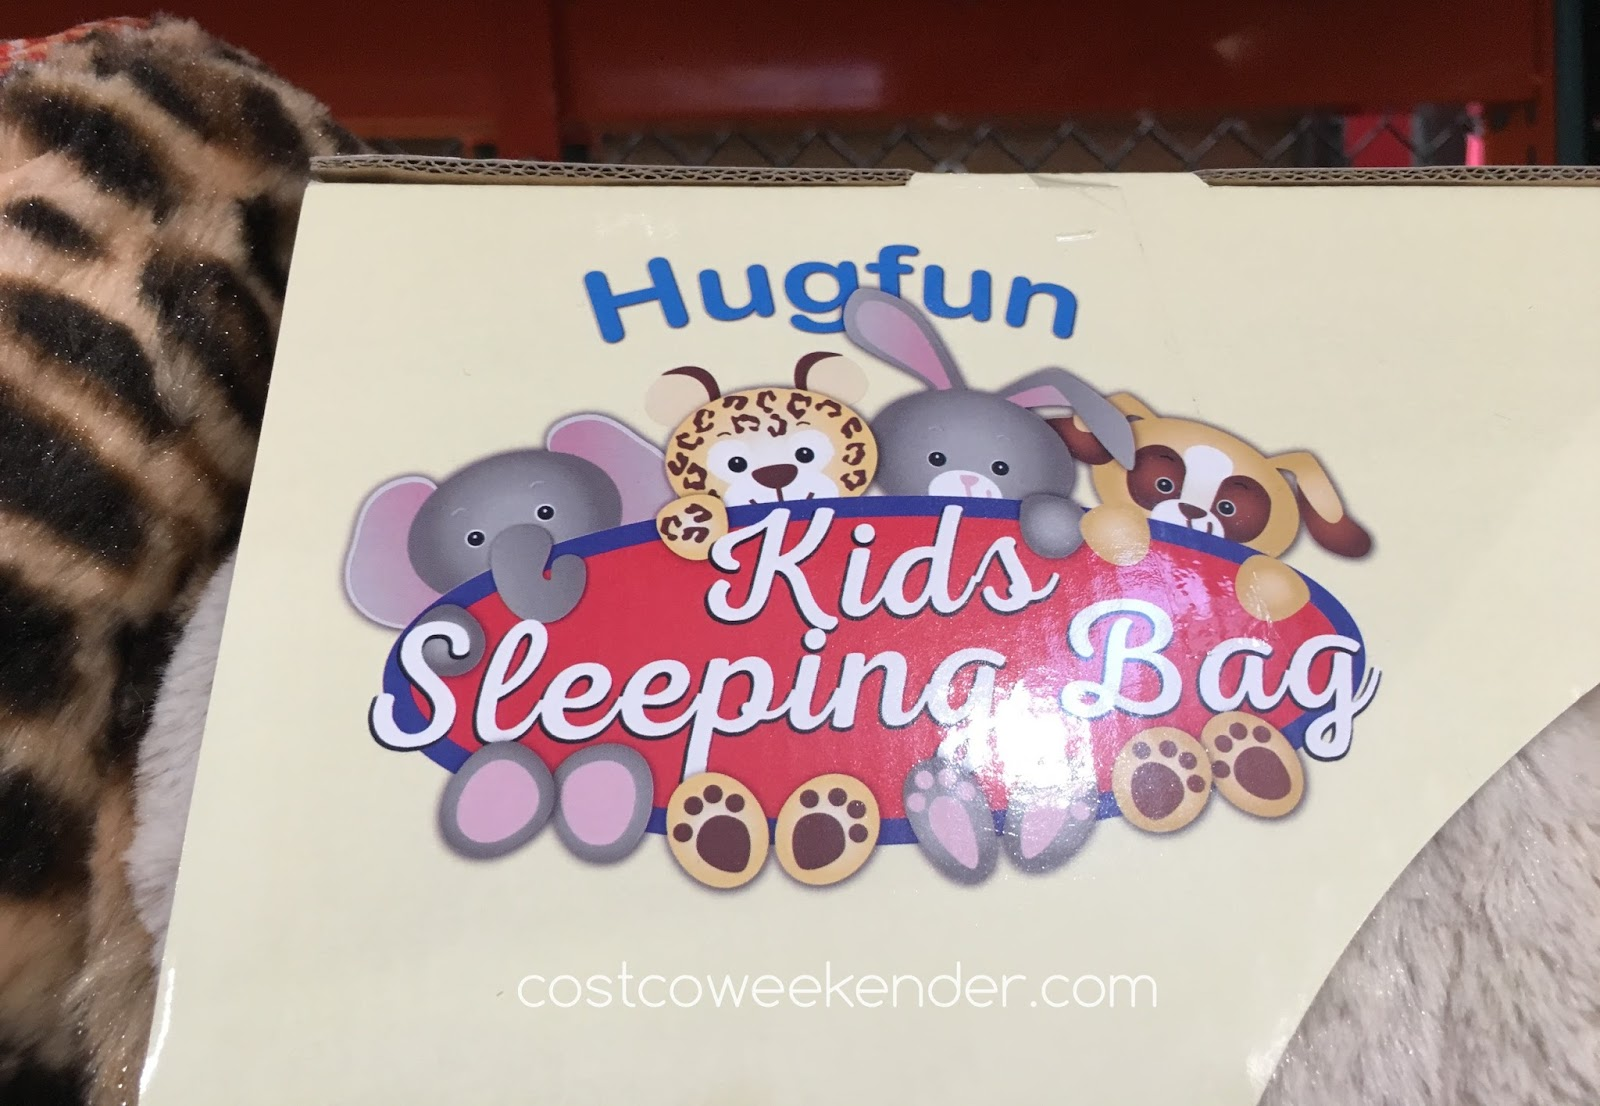 Enjoy a sleepover at your friend's house with the Hugfun Kids Slumber Bag